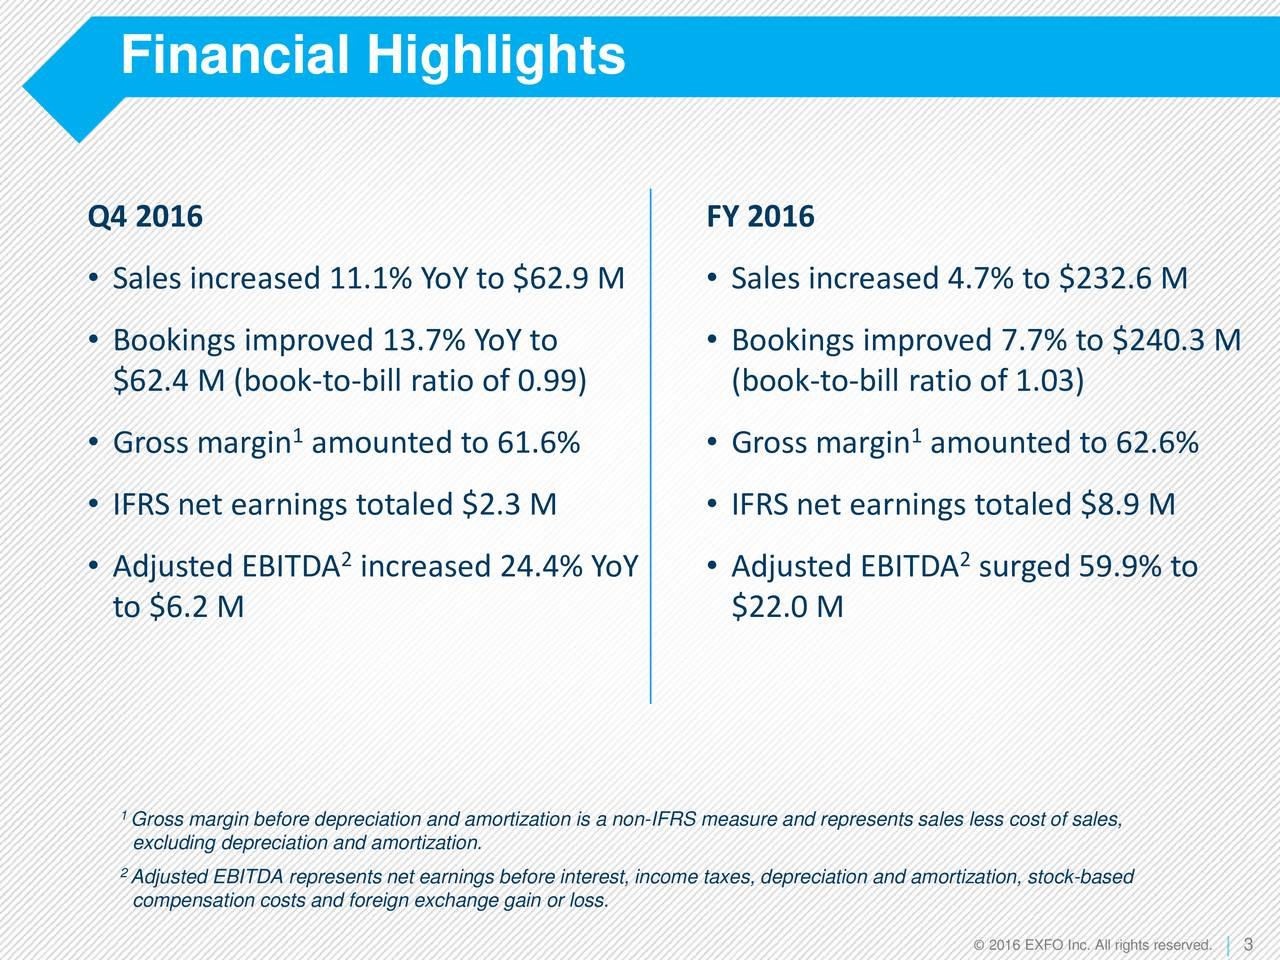 Q4 2016 FY 2016 Sales increased 11.1% YoY to $62.9 M  Sales increased 4.7% to $232.6 M Bookings improved 13.7% YoY to  Bookings improved 7.7% to $240.3 M $62.4 M (book-to-bill ratio of 0.99) (book-to-bill ratio of 1.03) 1 1 Gross margin amounted to 61.6%  Gross margin amounted to 62.6% IFRS net earnings totaled $2.3 M  IFRS net earnings totaled$8.9 M Adjusted EBITDA increased 24.4% YoY  Adjusted EBITDA surged 59.9% to to $6.2 M $22.0 M 1Gross margin before depreciation and amortization is a non-IFRS measure and represents sales less cost of sales, excluding depreciation and amortization. 2Adjusted EBITDA represents net earnings before interest, income taxes, depreciation and amortization, stock-based compensation costs and foreign exchange gain or loss.